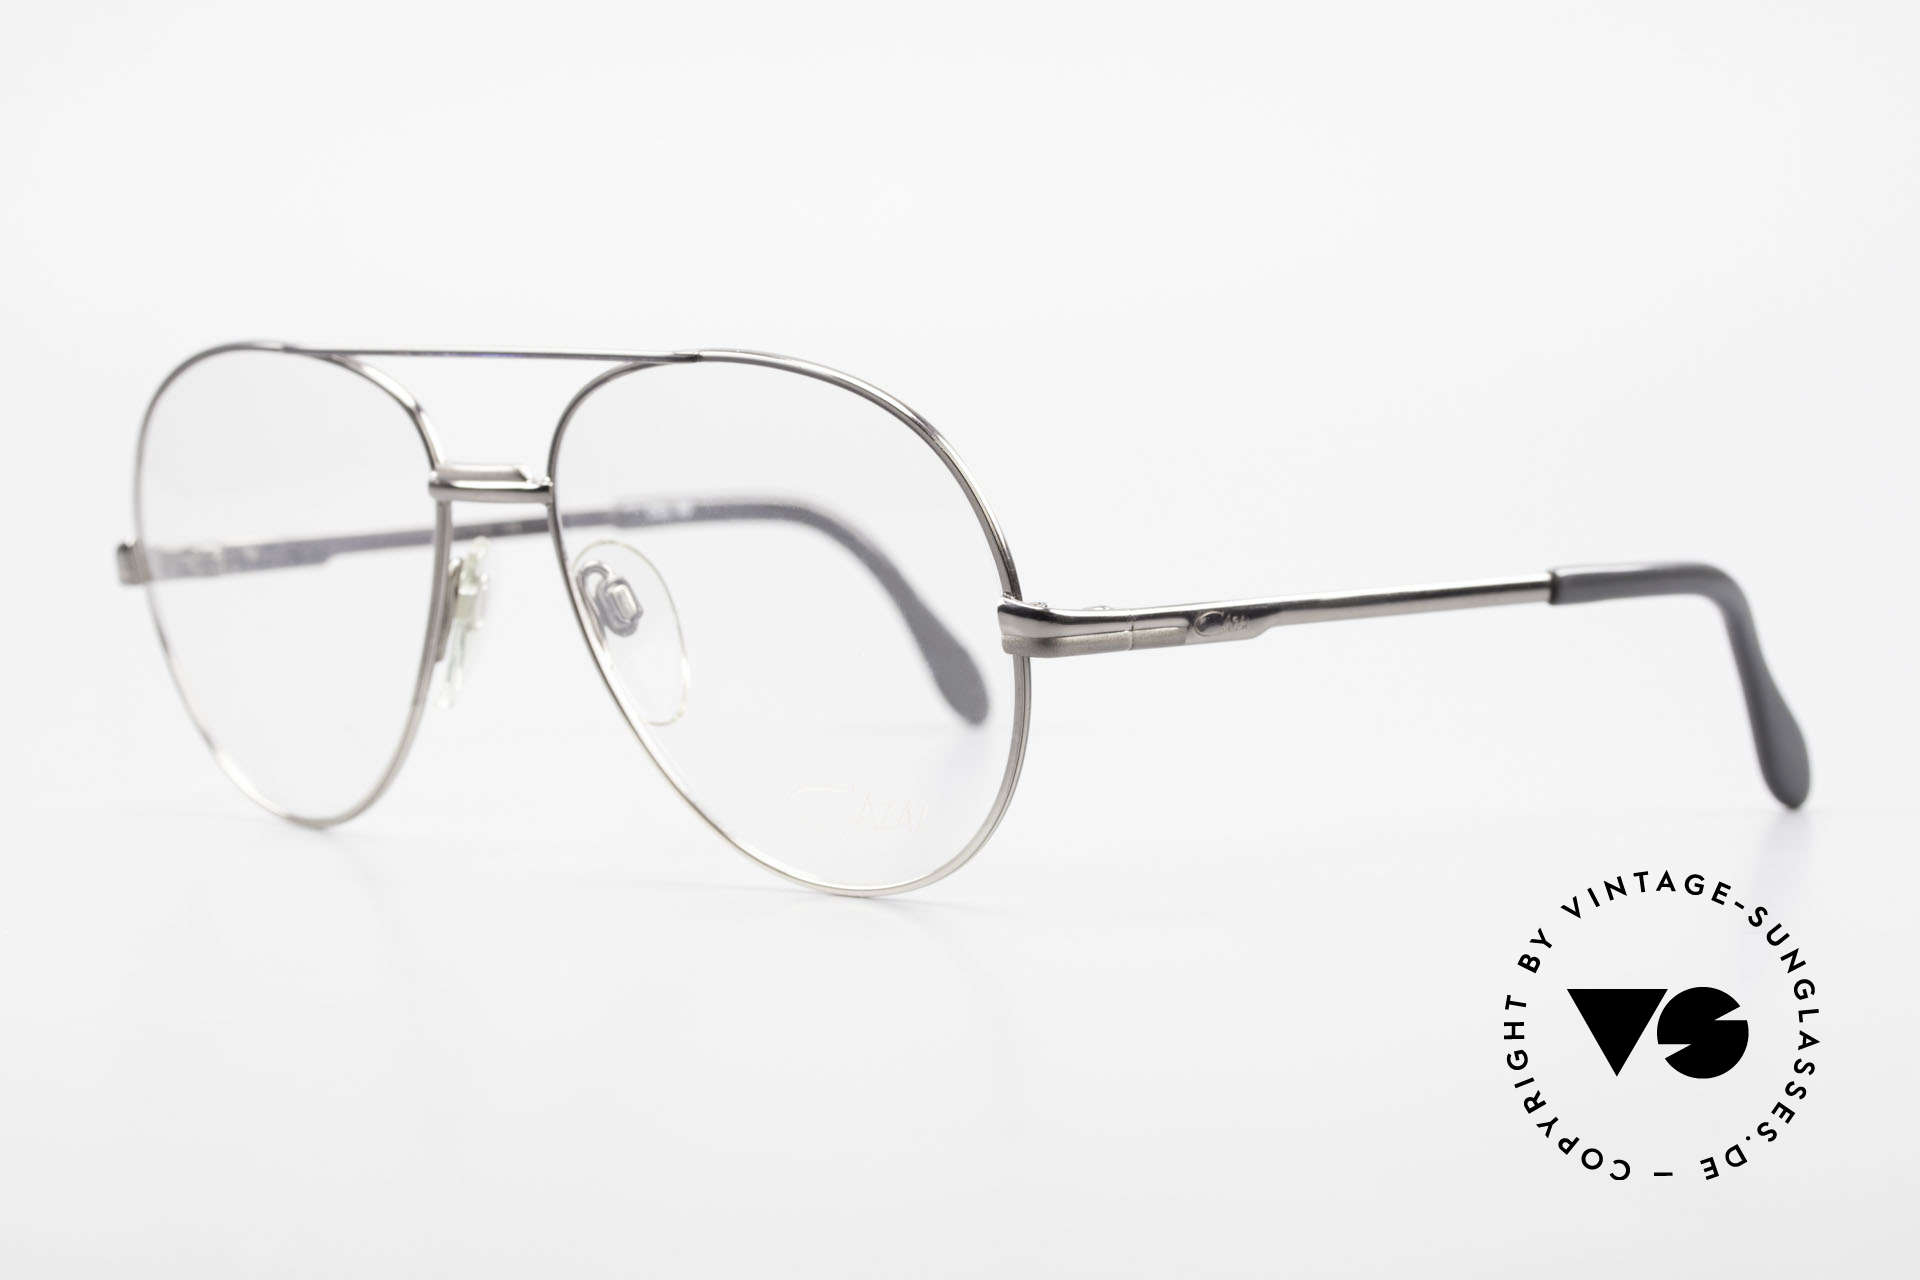 Cazal 708 First 700's West Germany Cazal, models 701-707 still have the 'Frame Germany' engraving, Made for Men